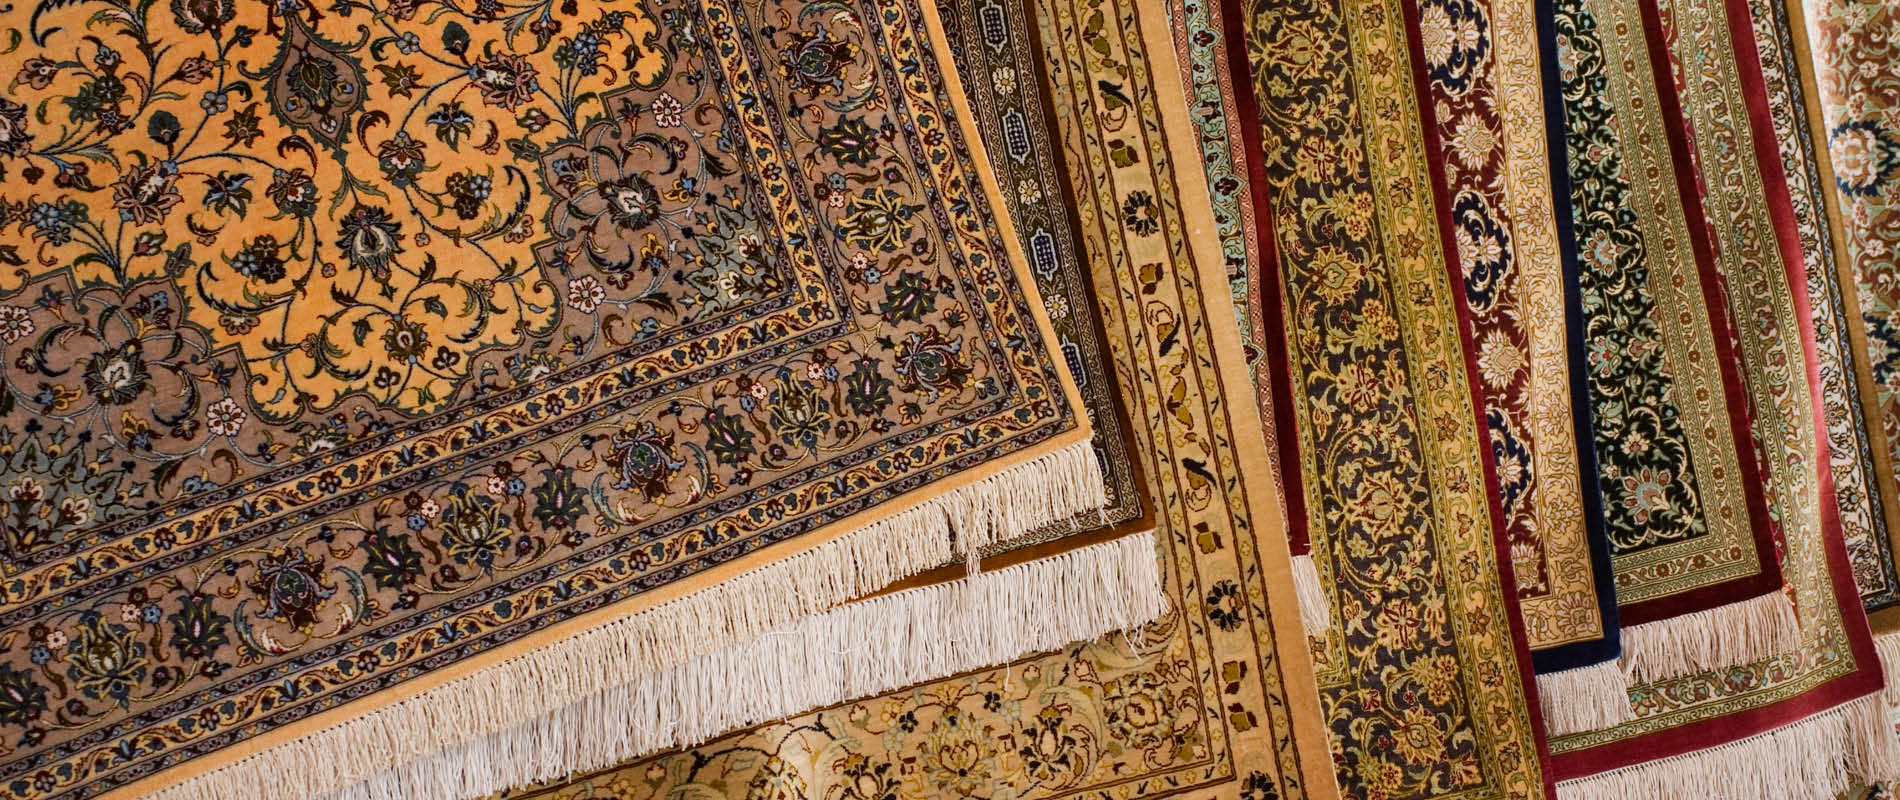 Fuzzy Wuzzy Rug Cleaning Company professionally cleaned Oriental and Persian rugs